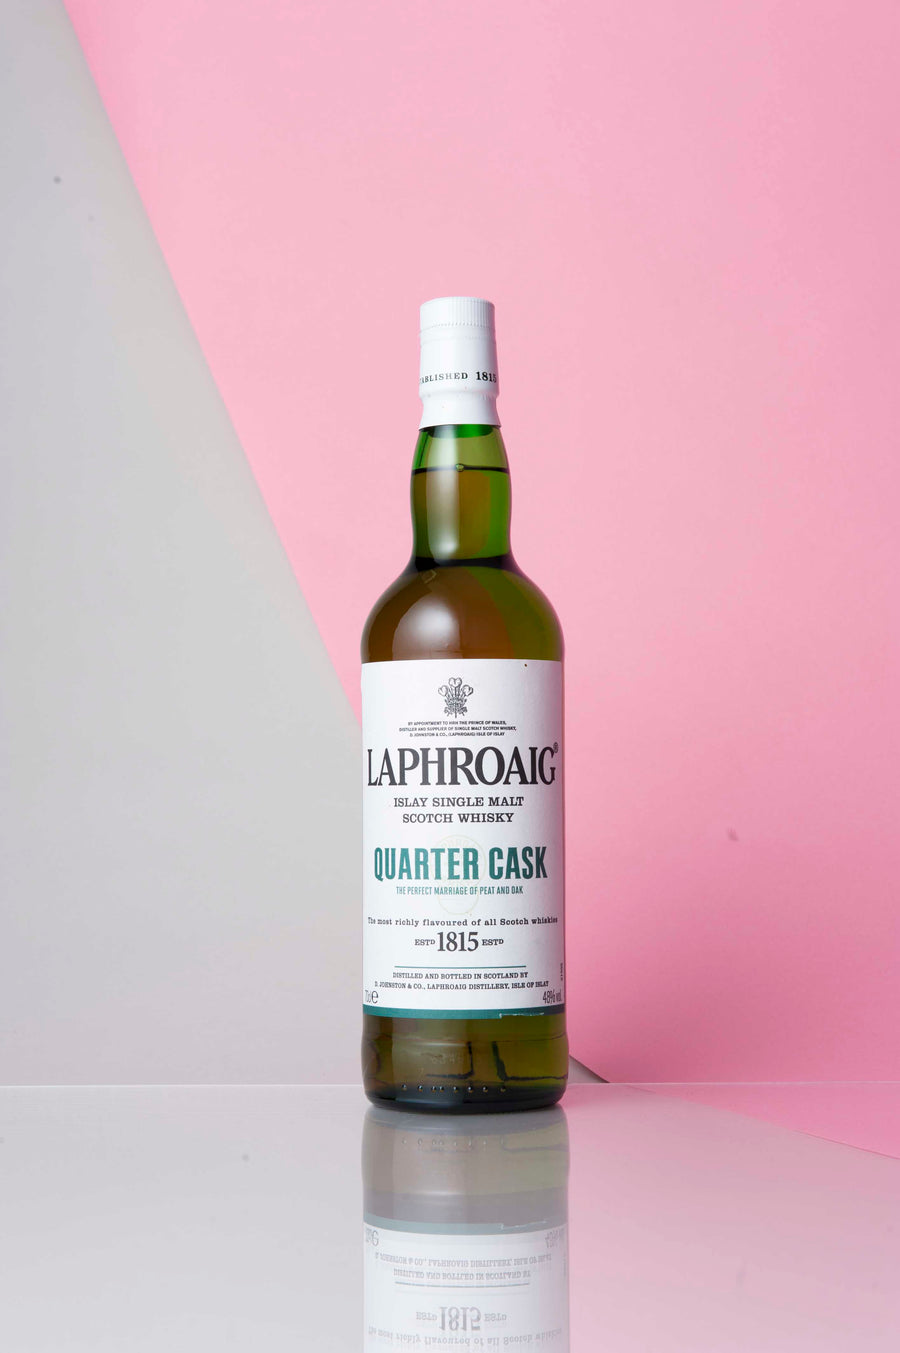 Laphroaig Quarter Cask Single Malt